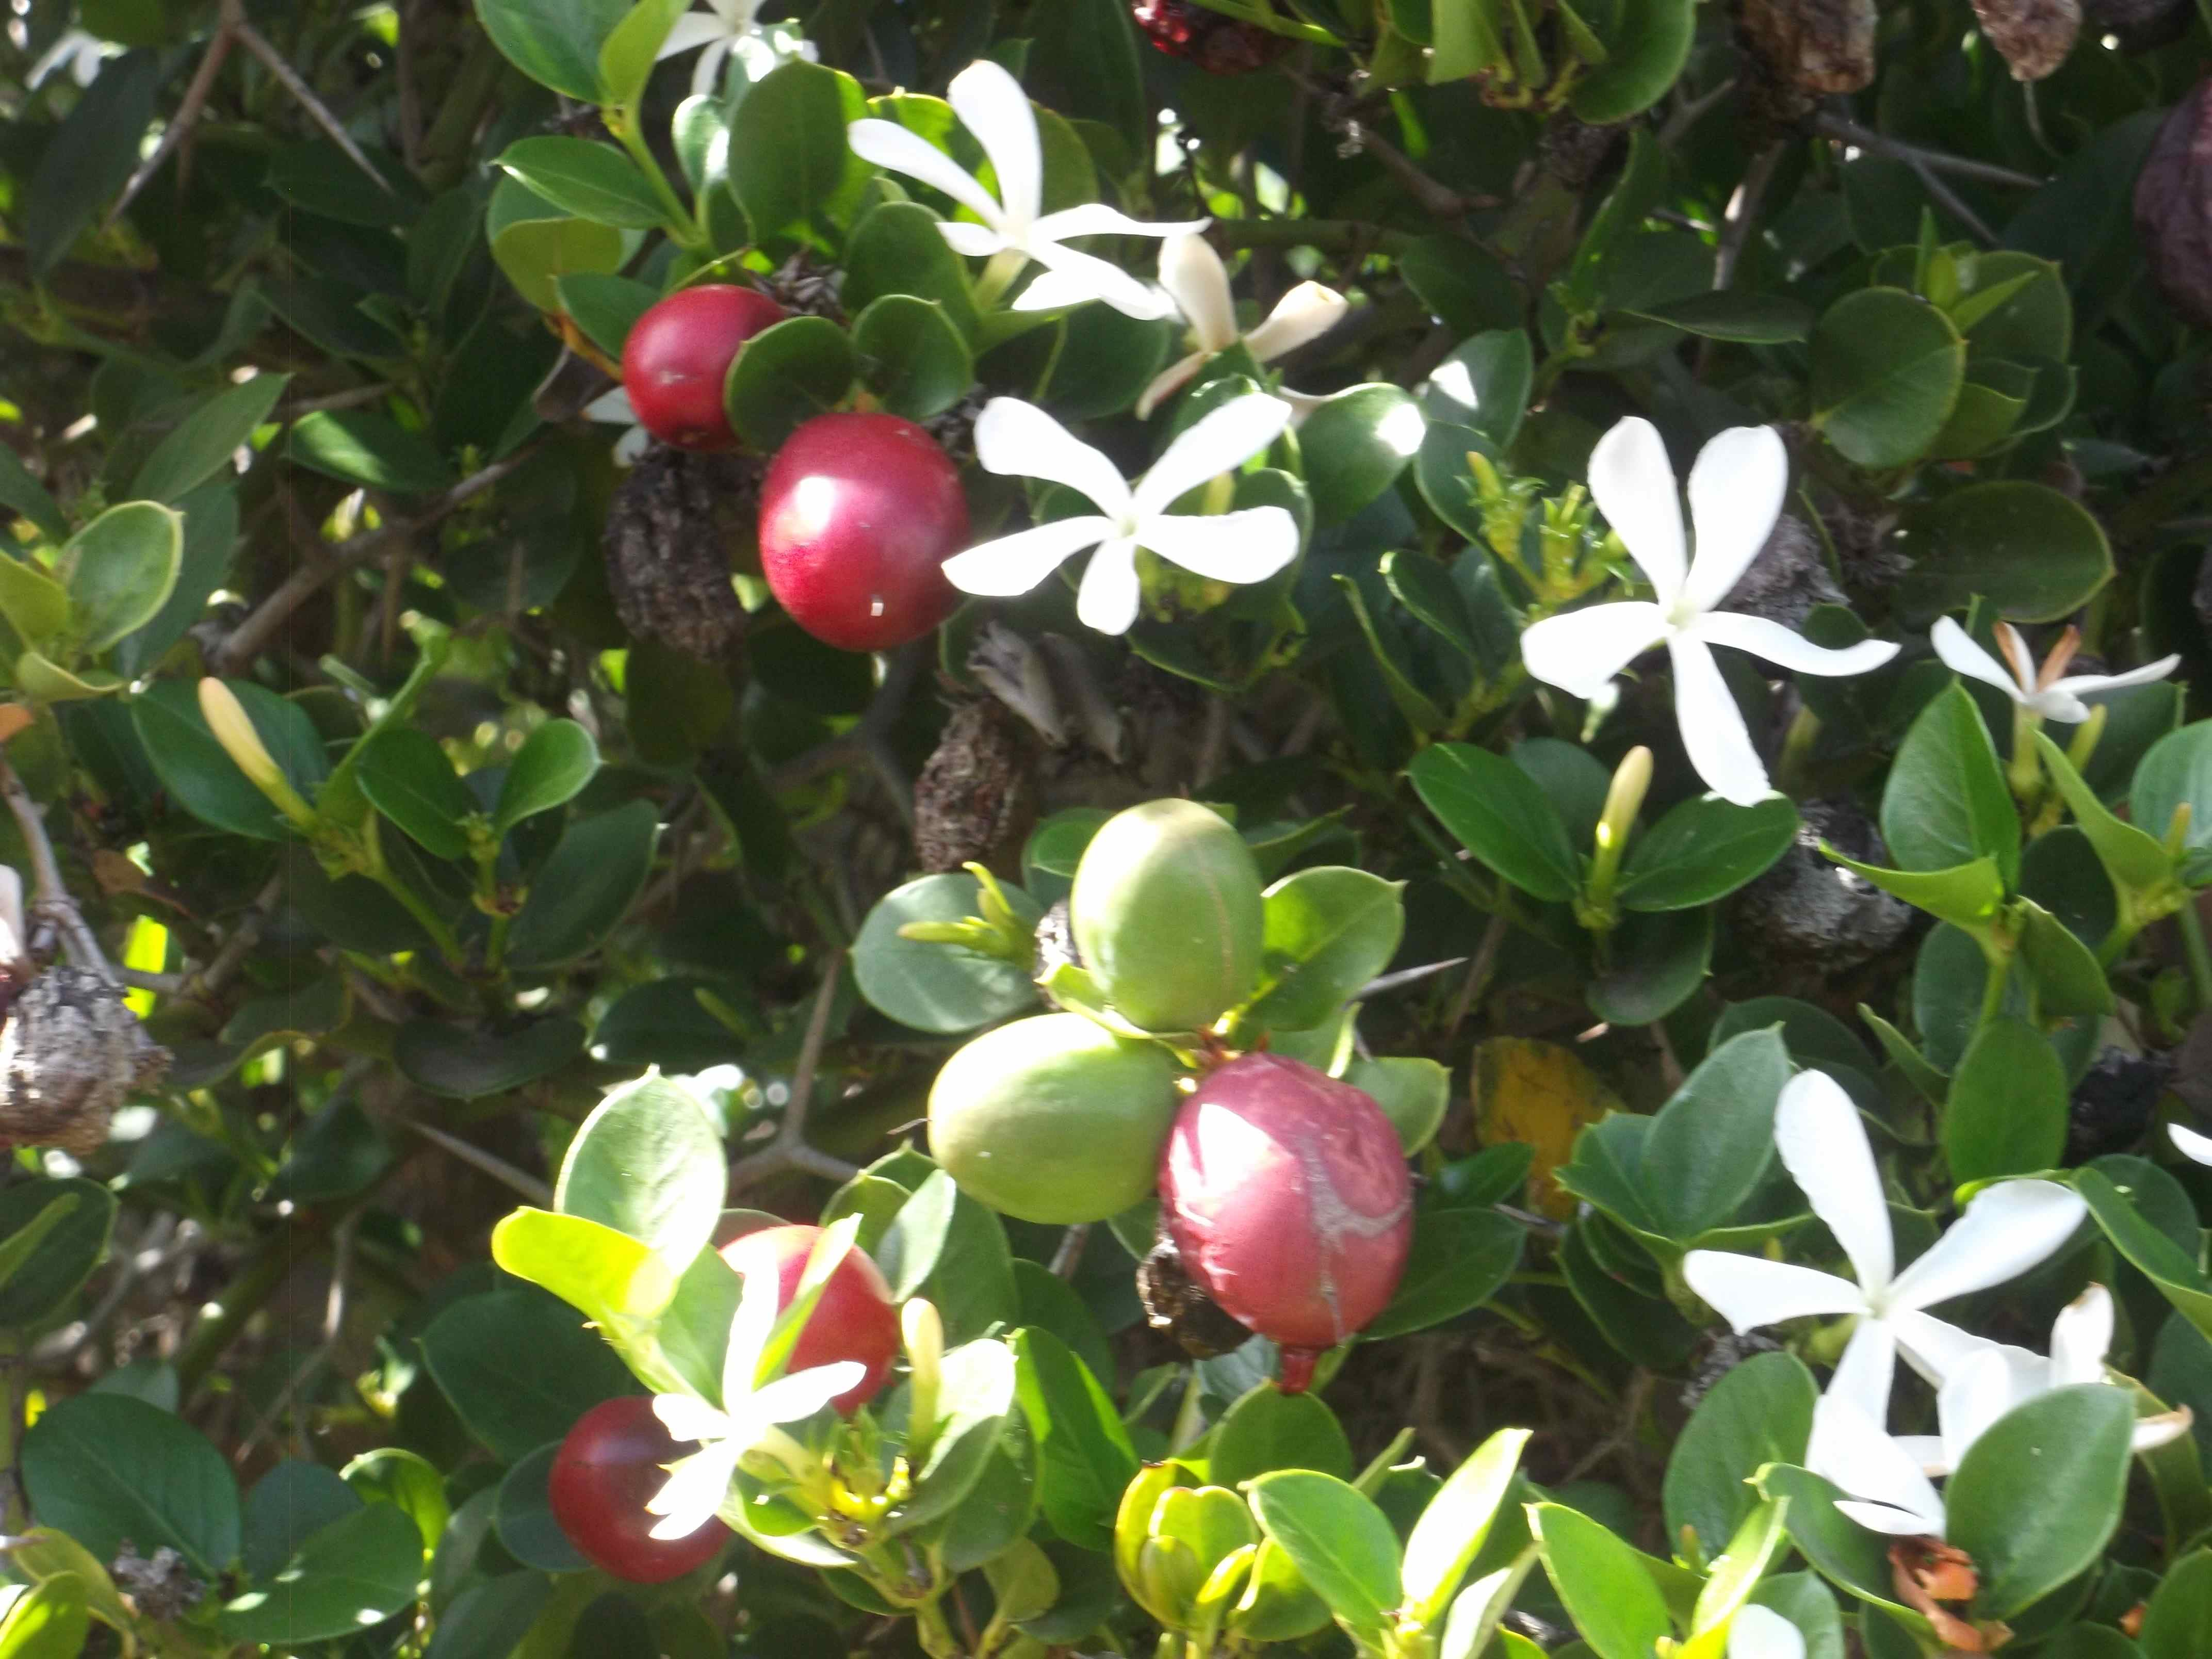 Carissa bispinosa, lovely gardenia perfume, delicious fruit, inconvenient thorns, great hedge plant